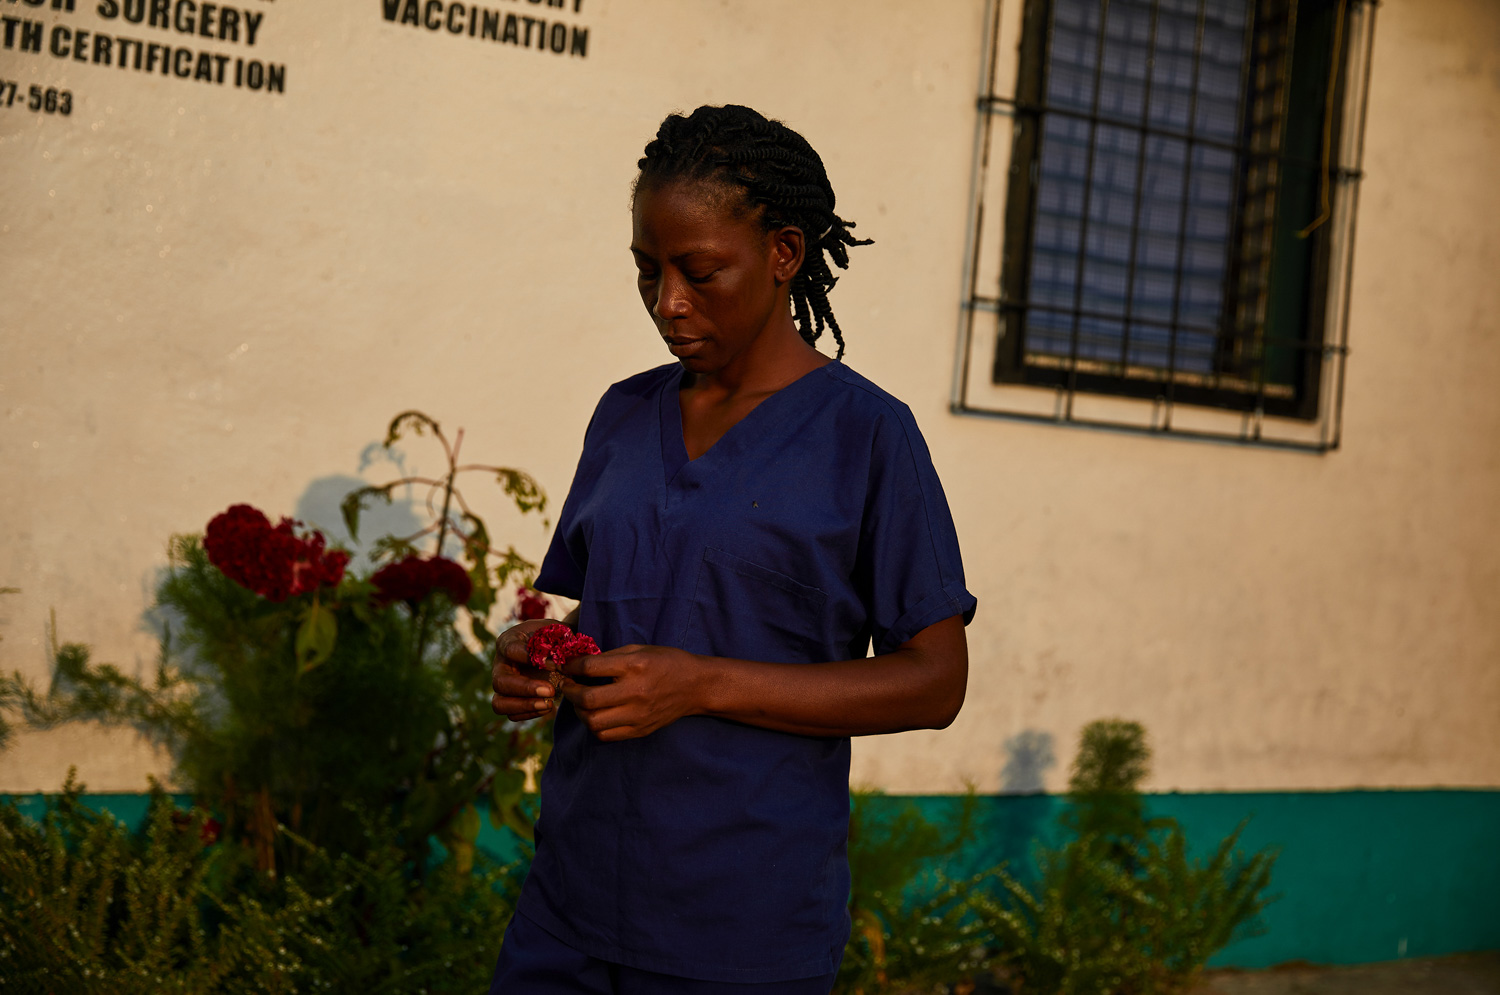 Life after Ebola in Liberia & Sierra Leone